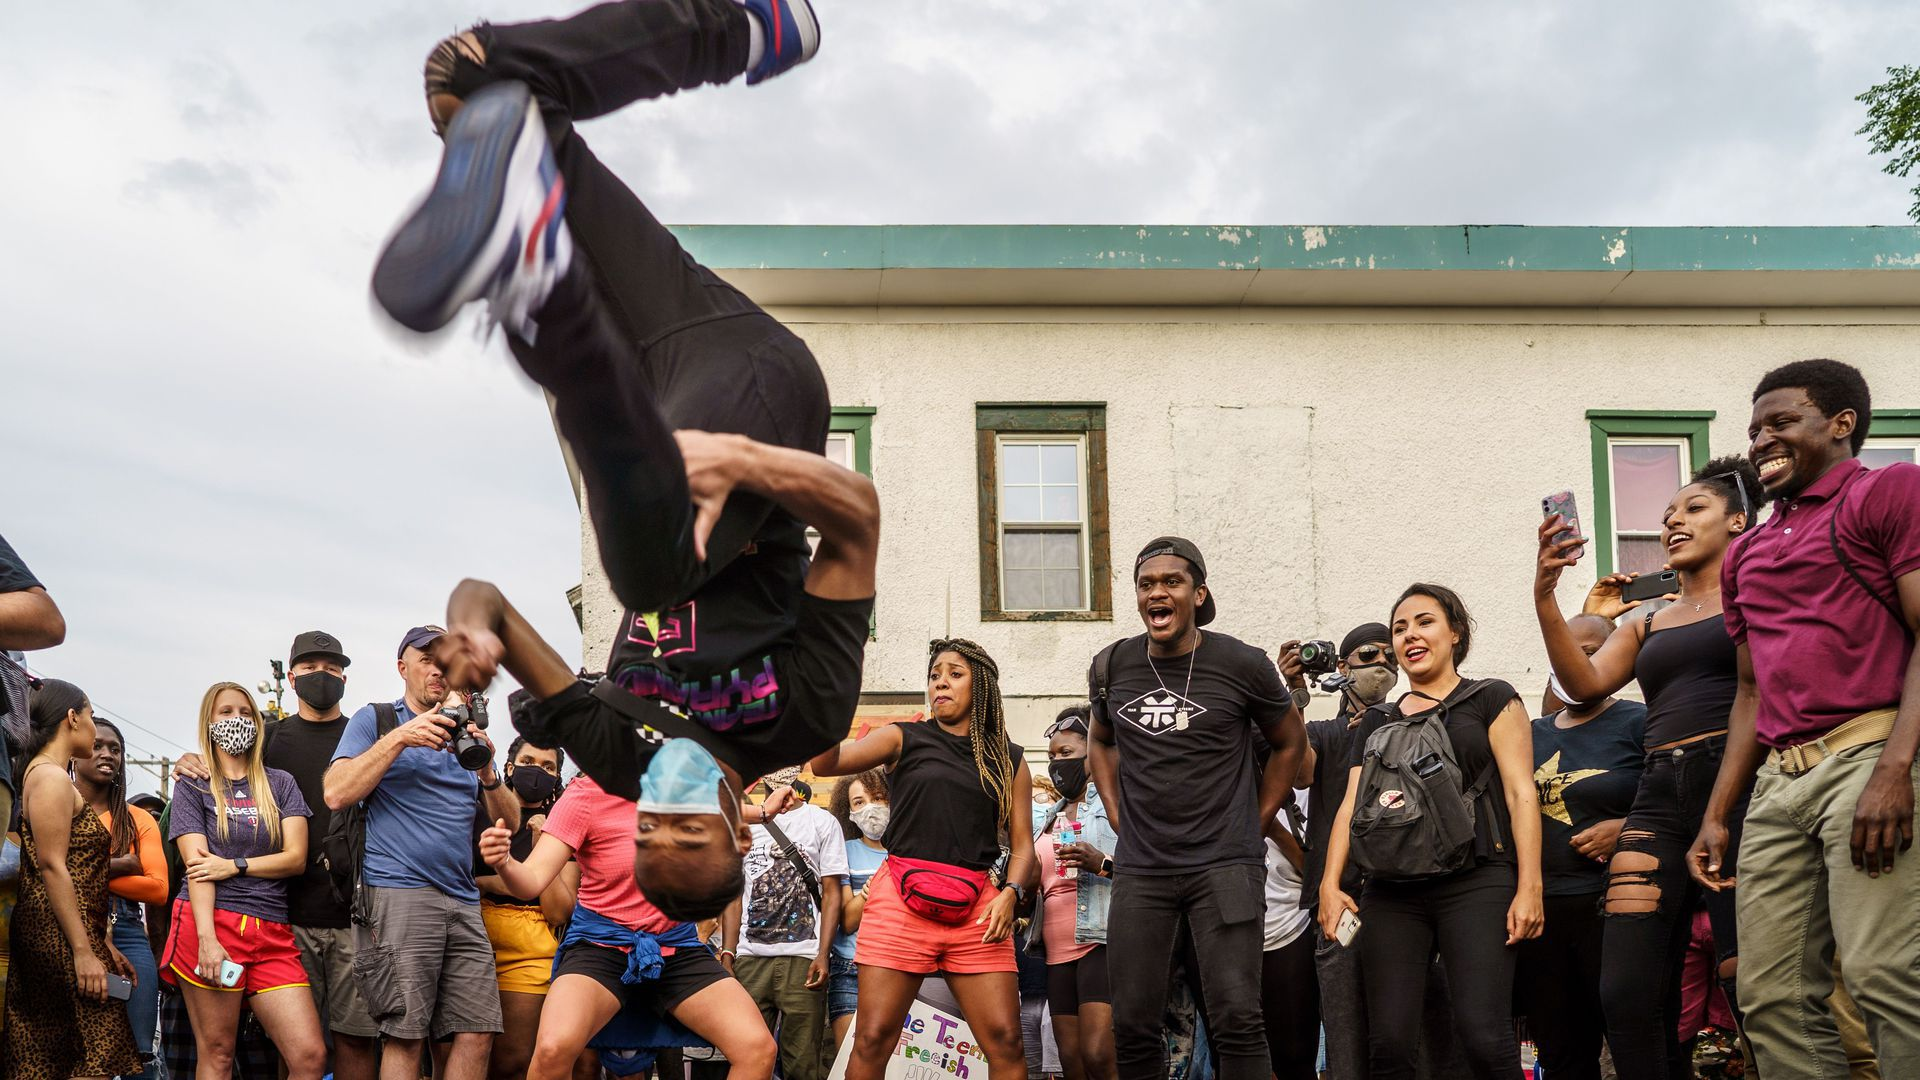 A man doing a backflip and people celebrating Juneteenth last year in George Floyd Square.